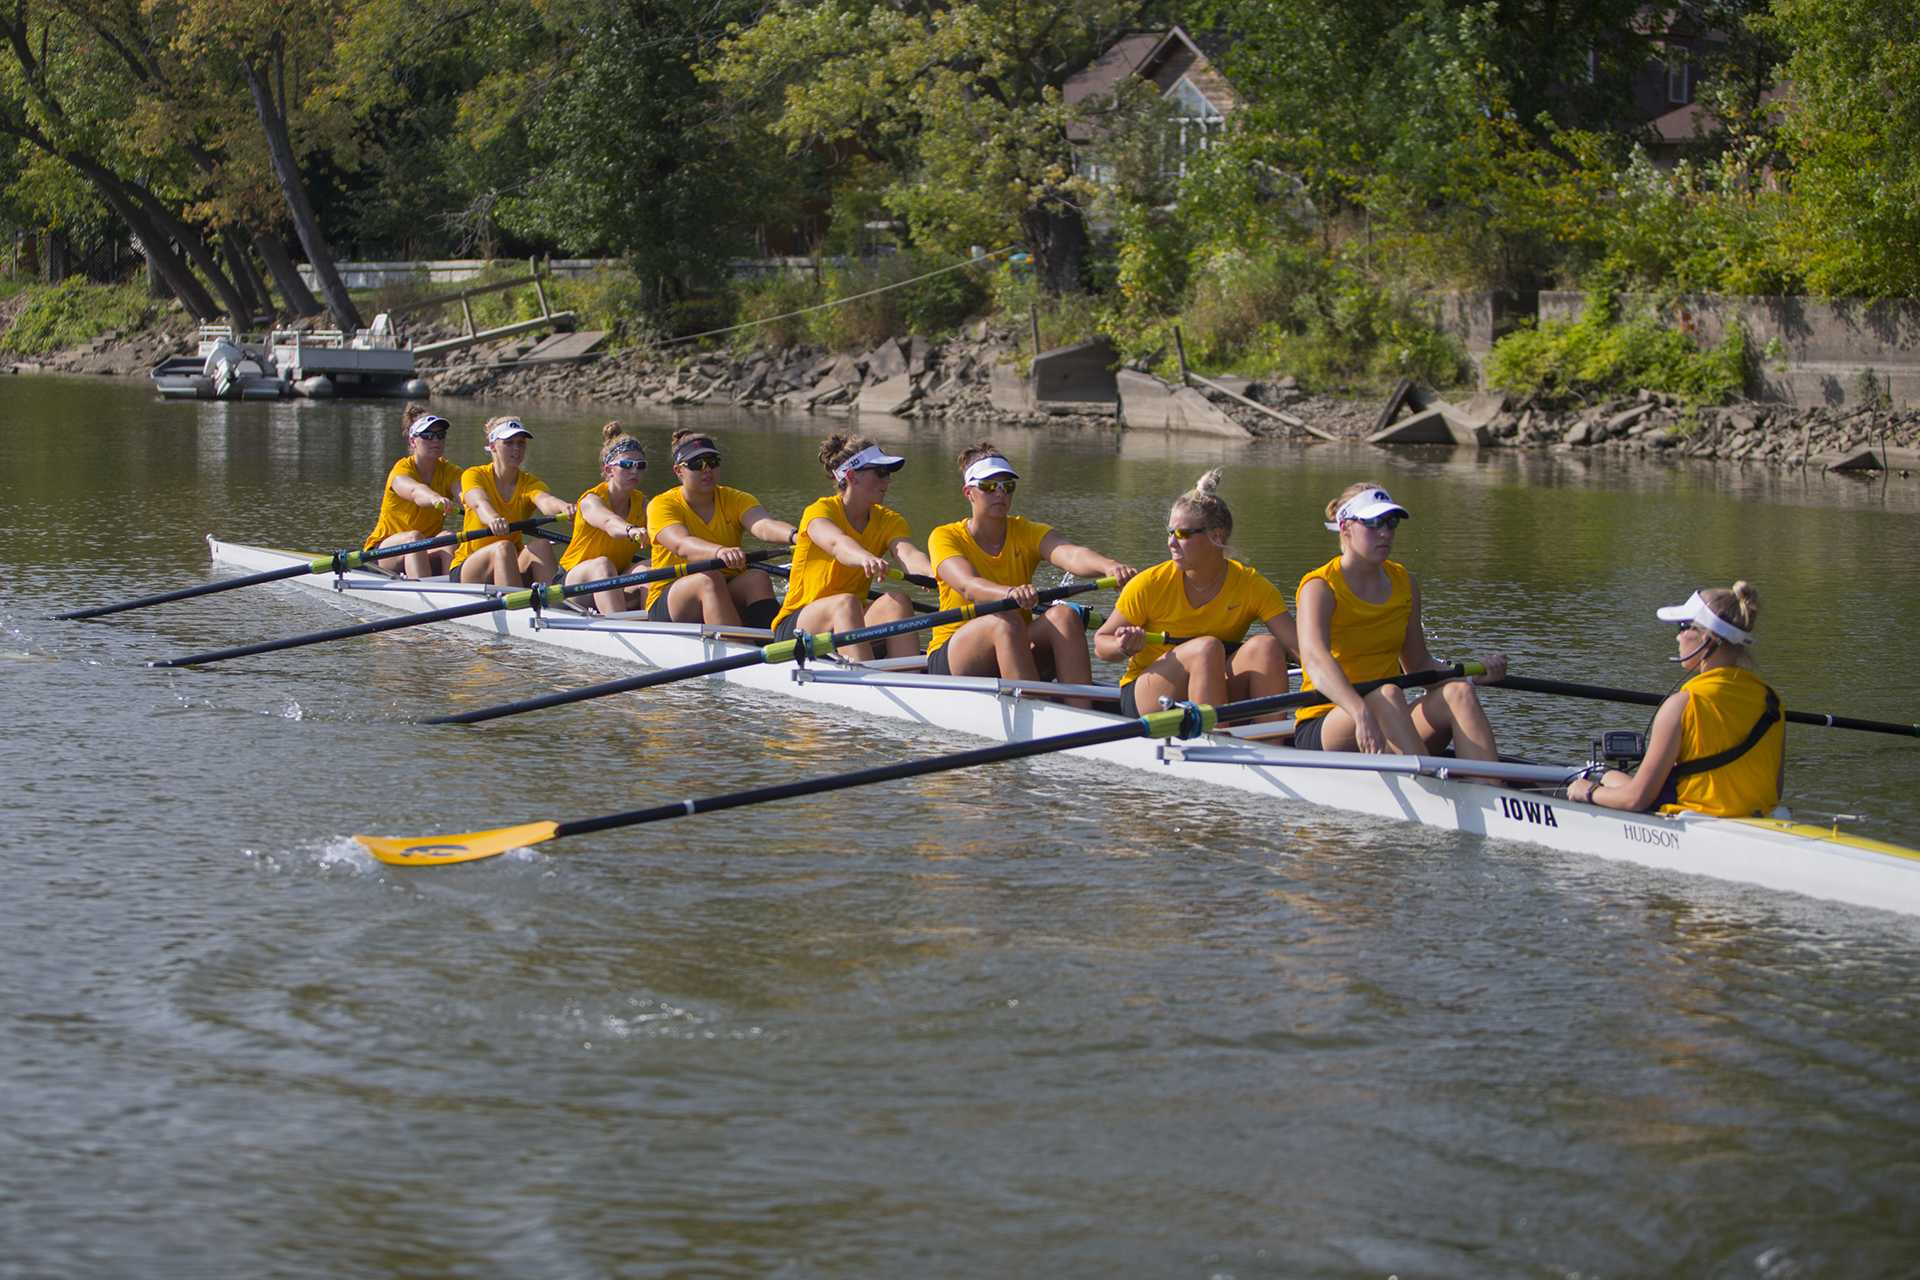 Iowa rowing stays hot at the Henley